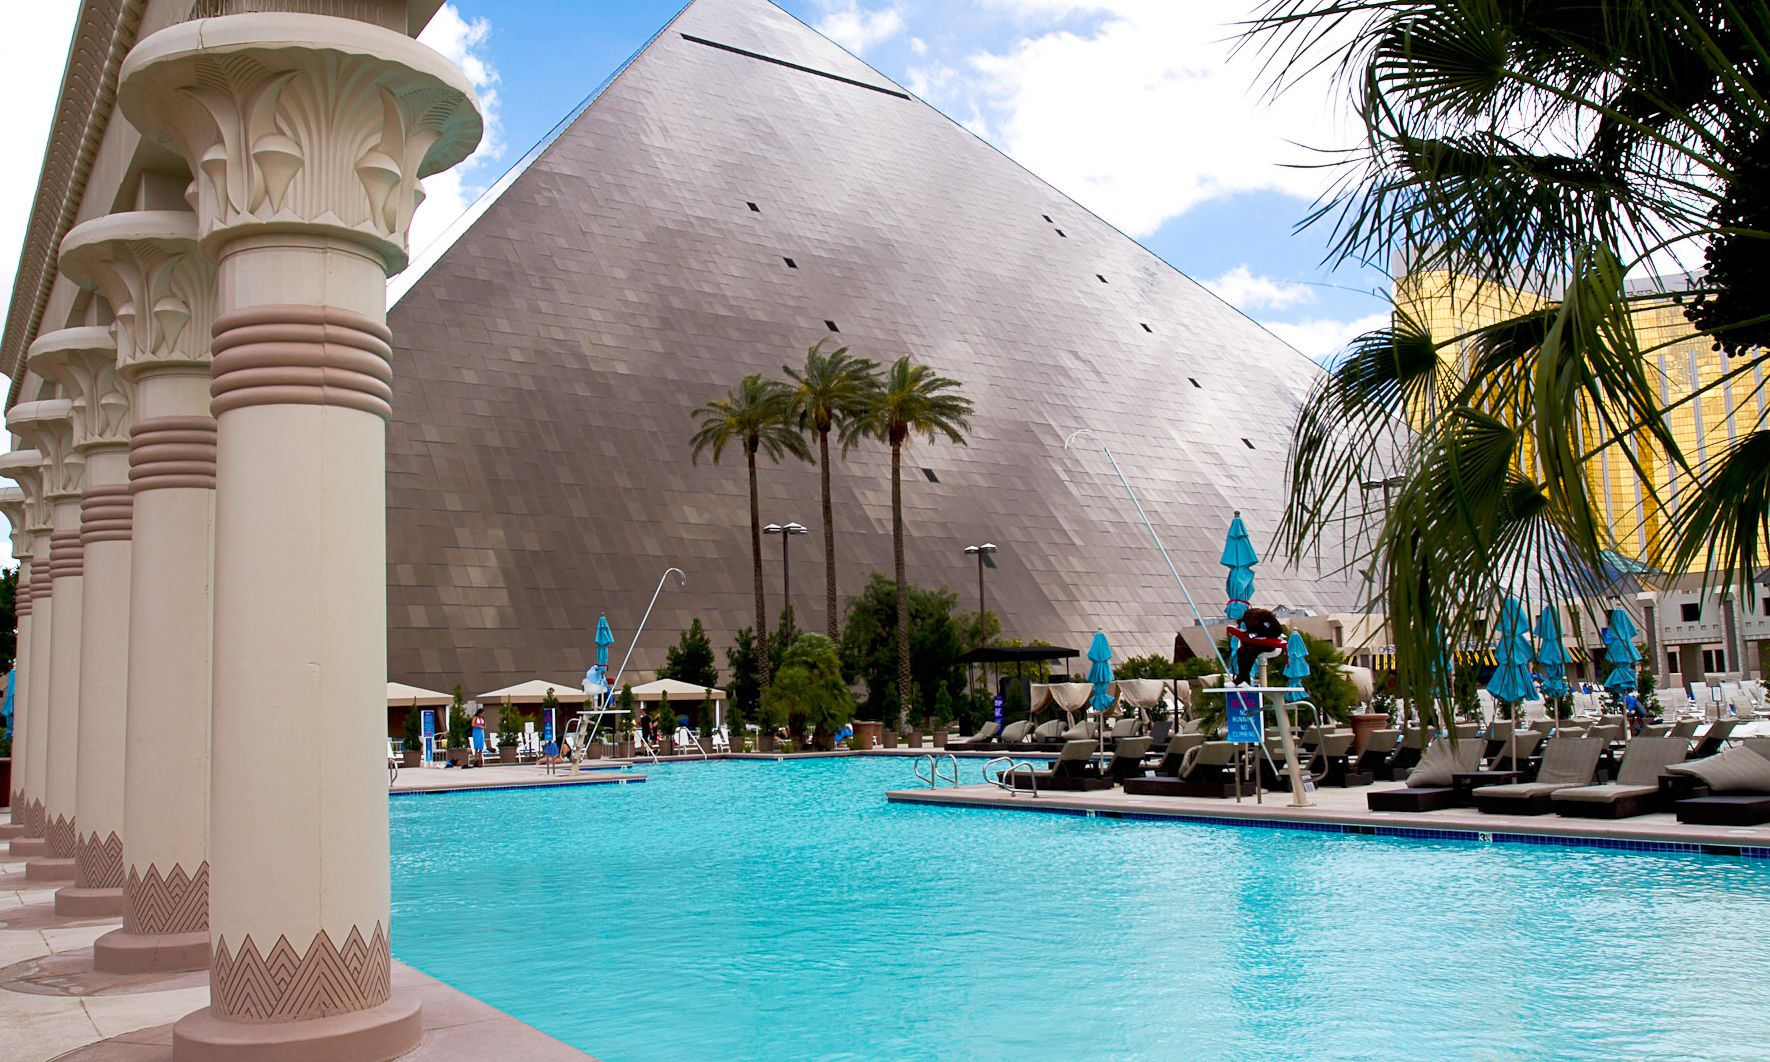 Stay At 4 Star Luxor Las Vegas Hotel And Casino Nv Las Vegas Hotels Vegas Vacation Luxor Las Vegas